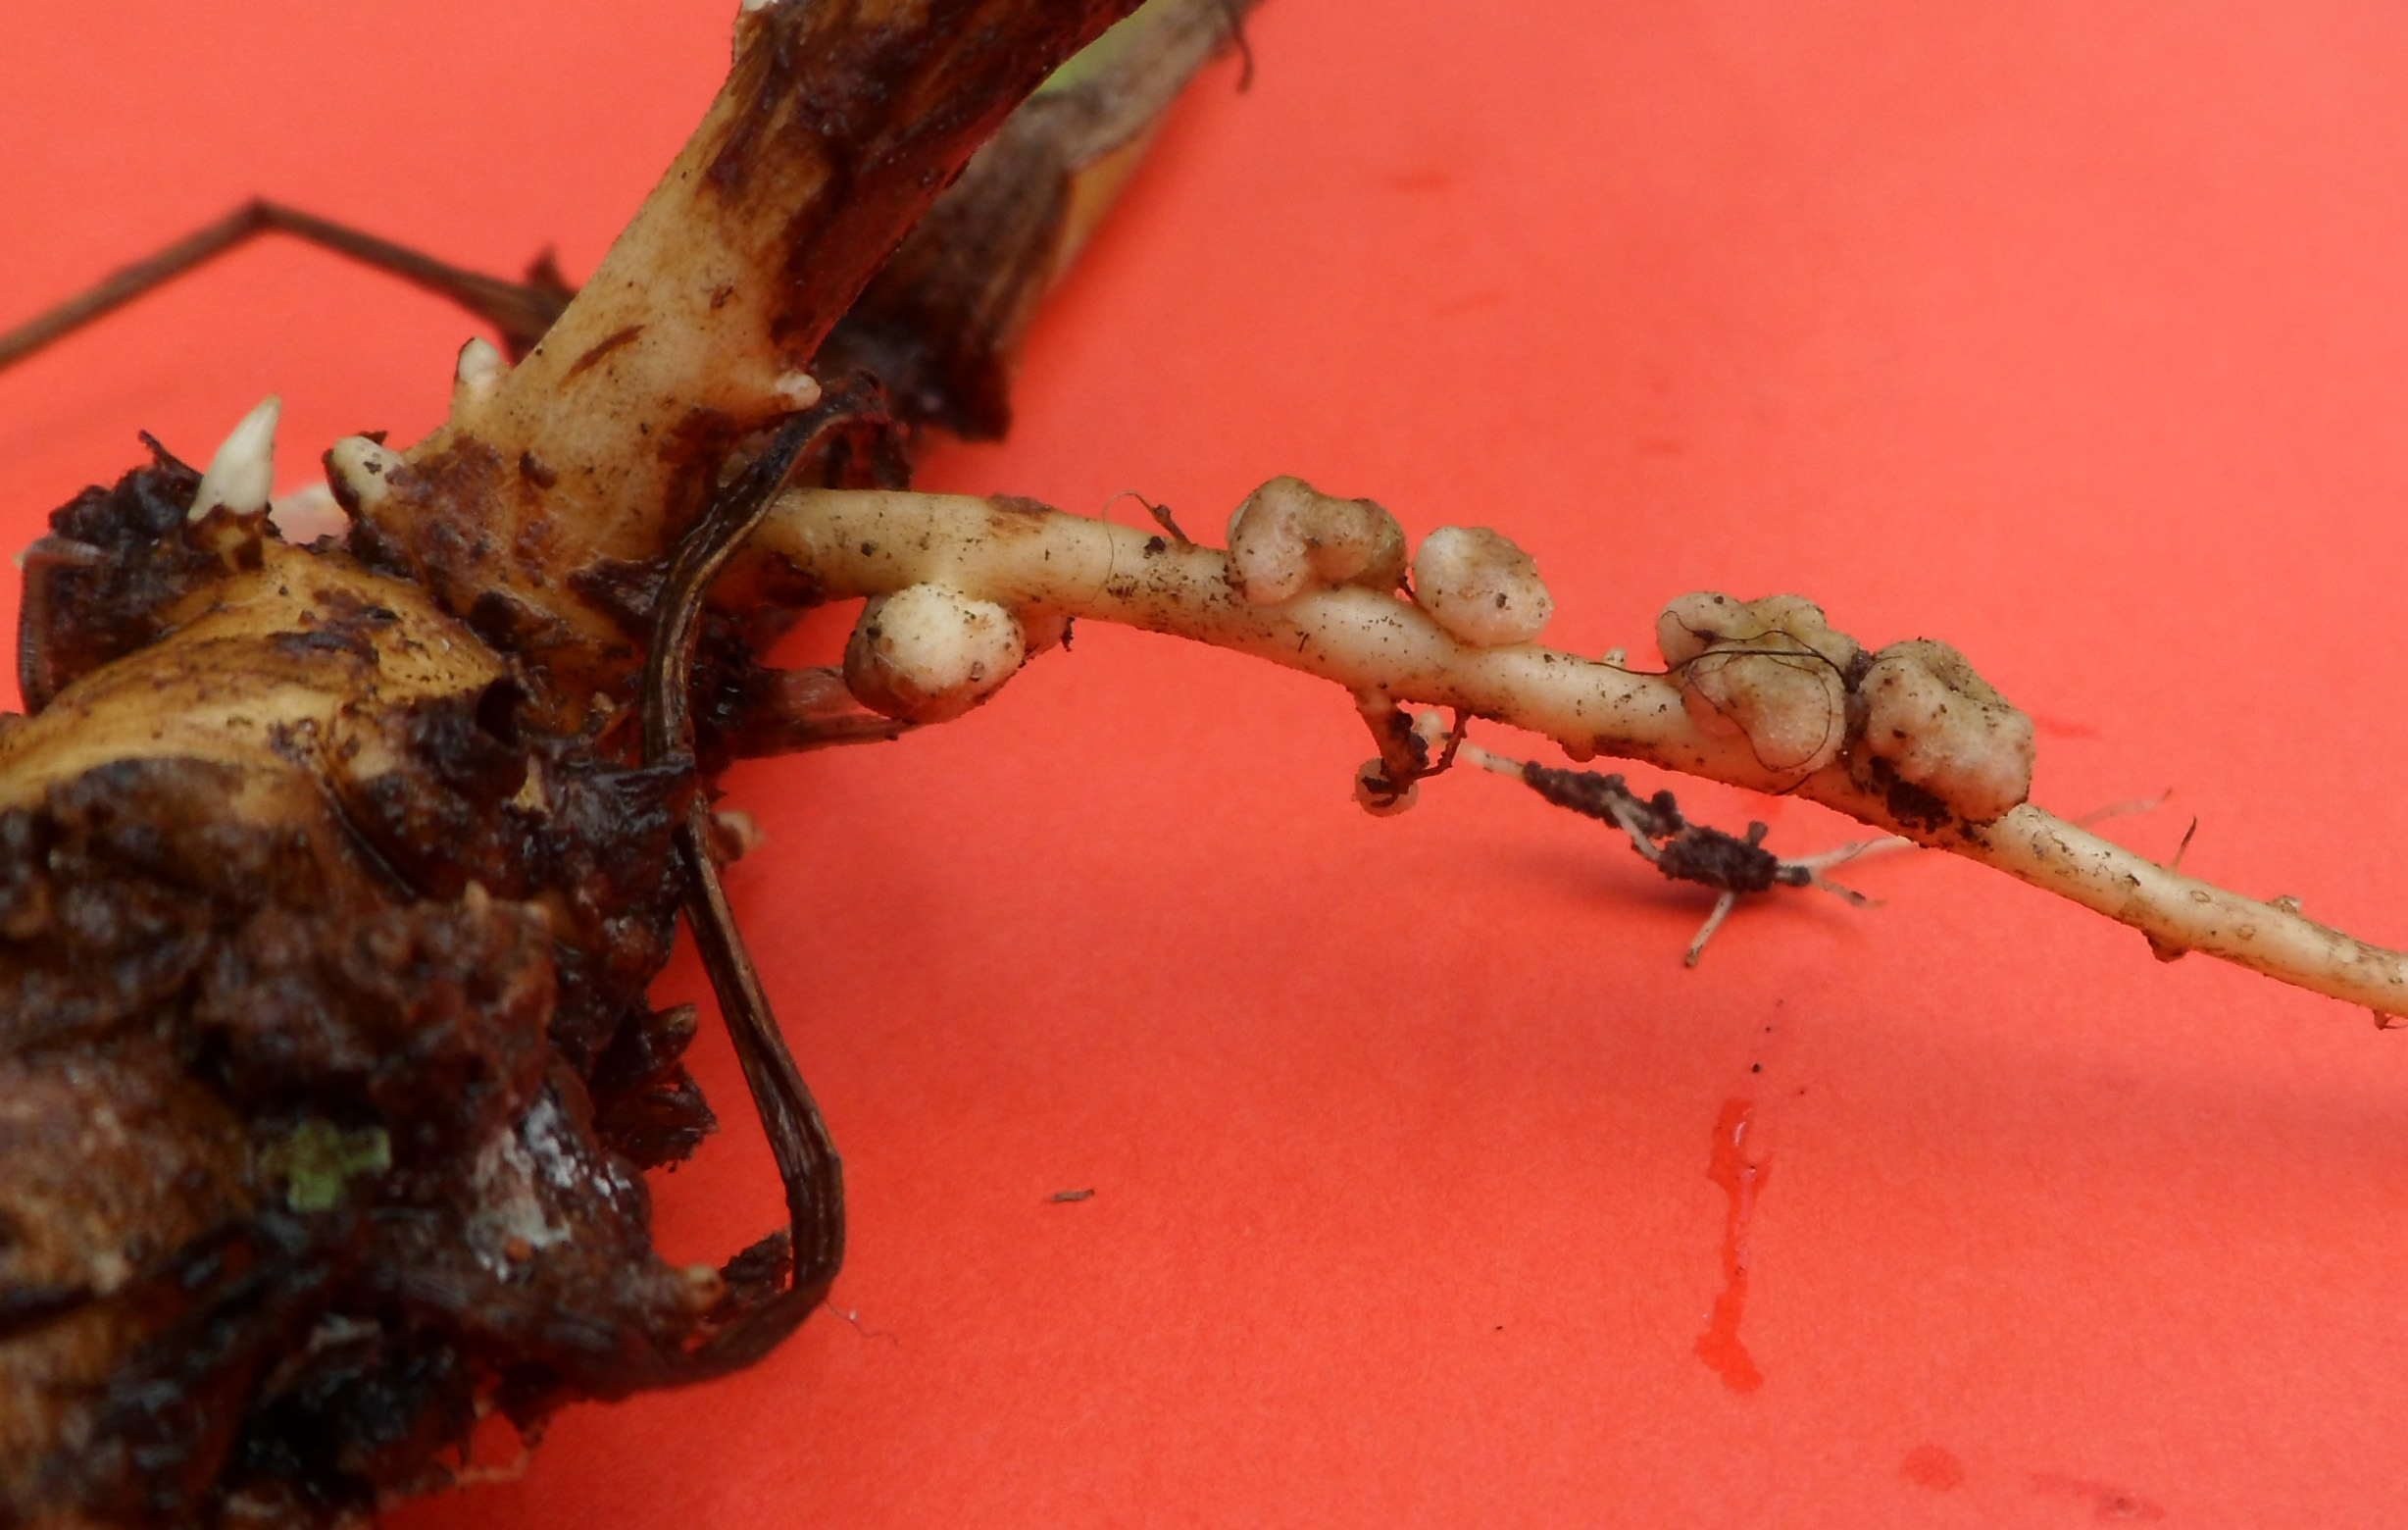 A photo of a tuber in which microorganisms and roots have formed a symbiosis.